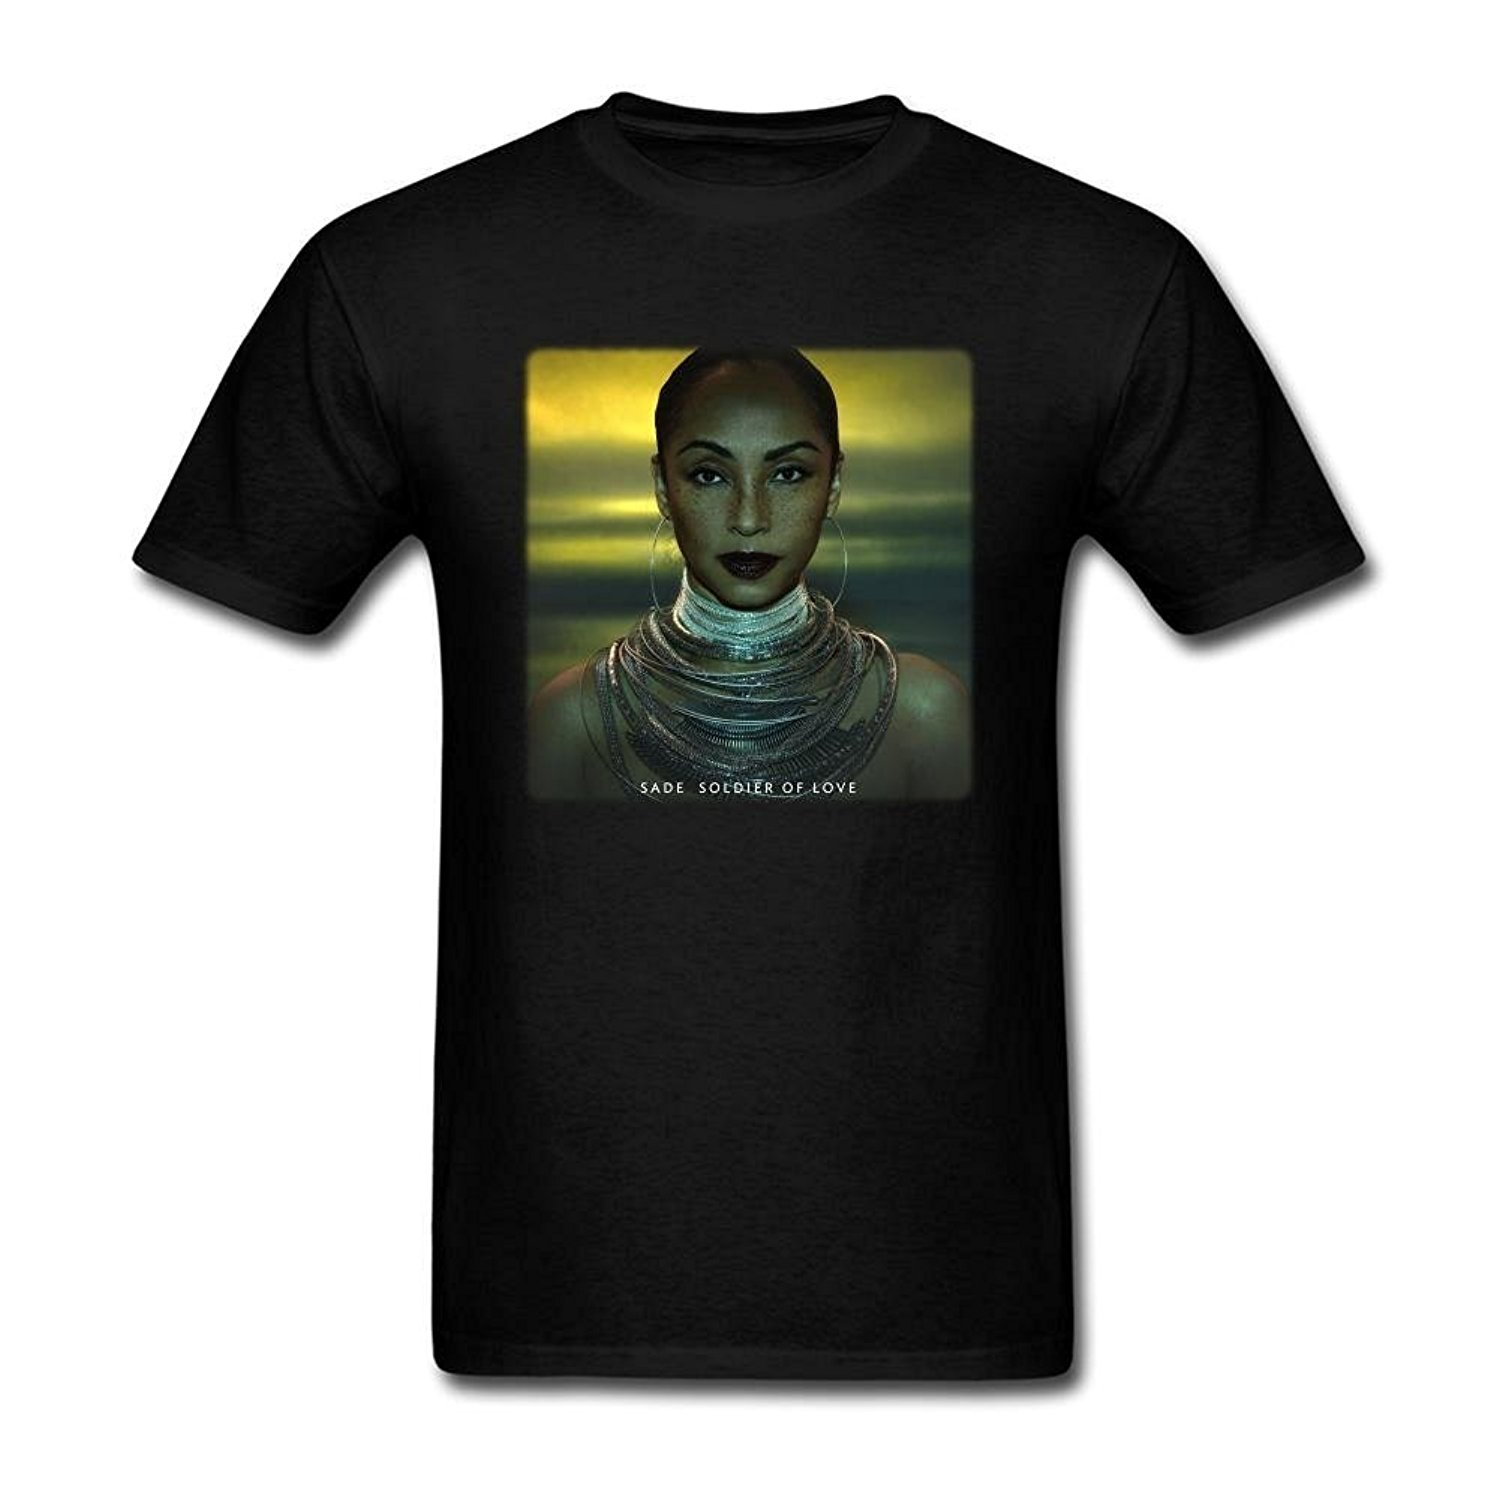 72ceb27415494b Men s Sade Solider Of Love T Shirt-in T-Shirts from Men s Clothing on  Aliexpress.com